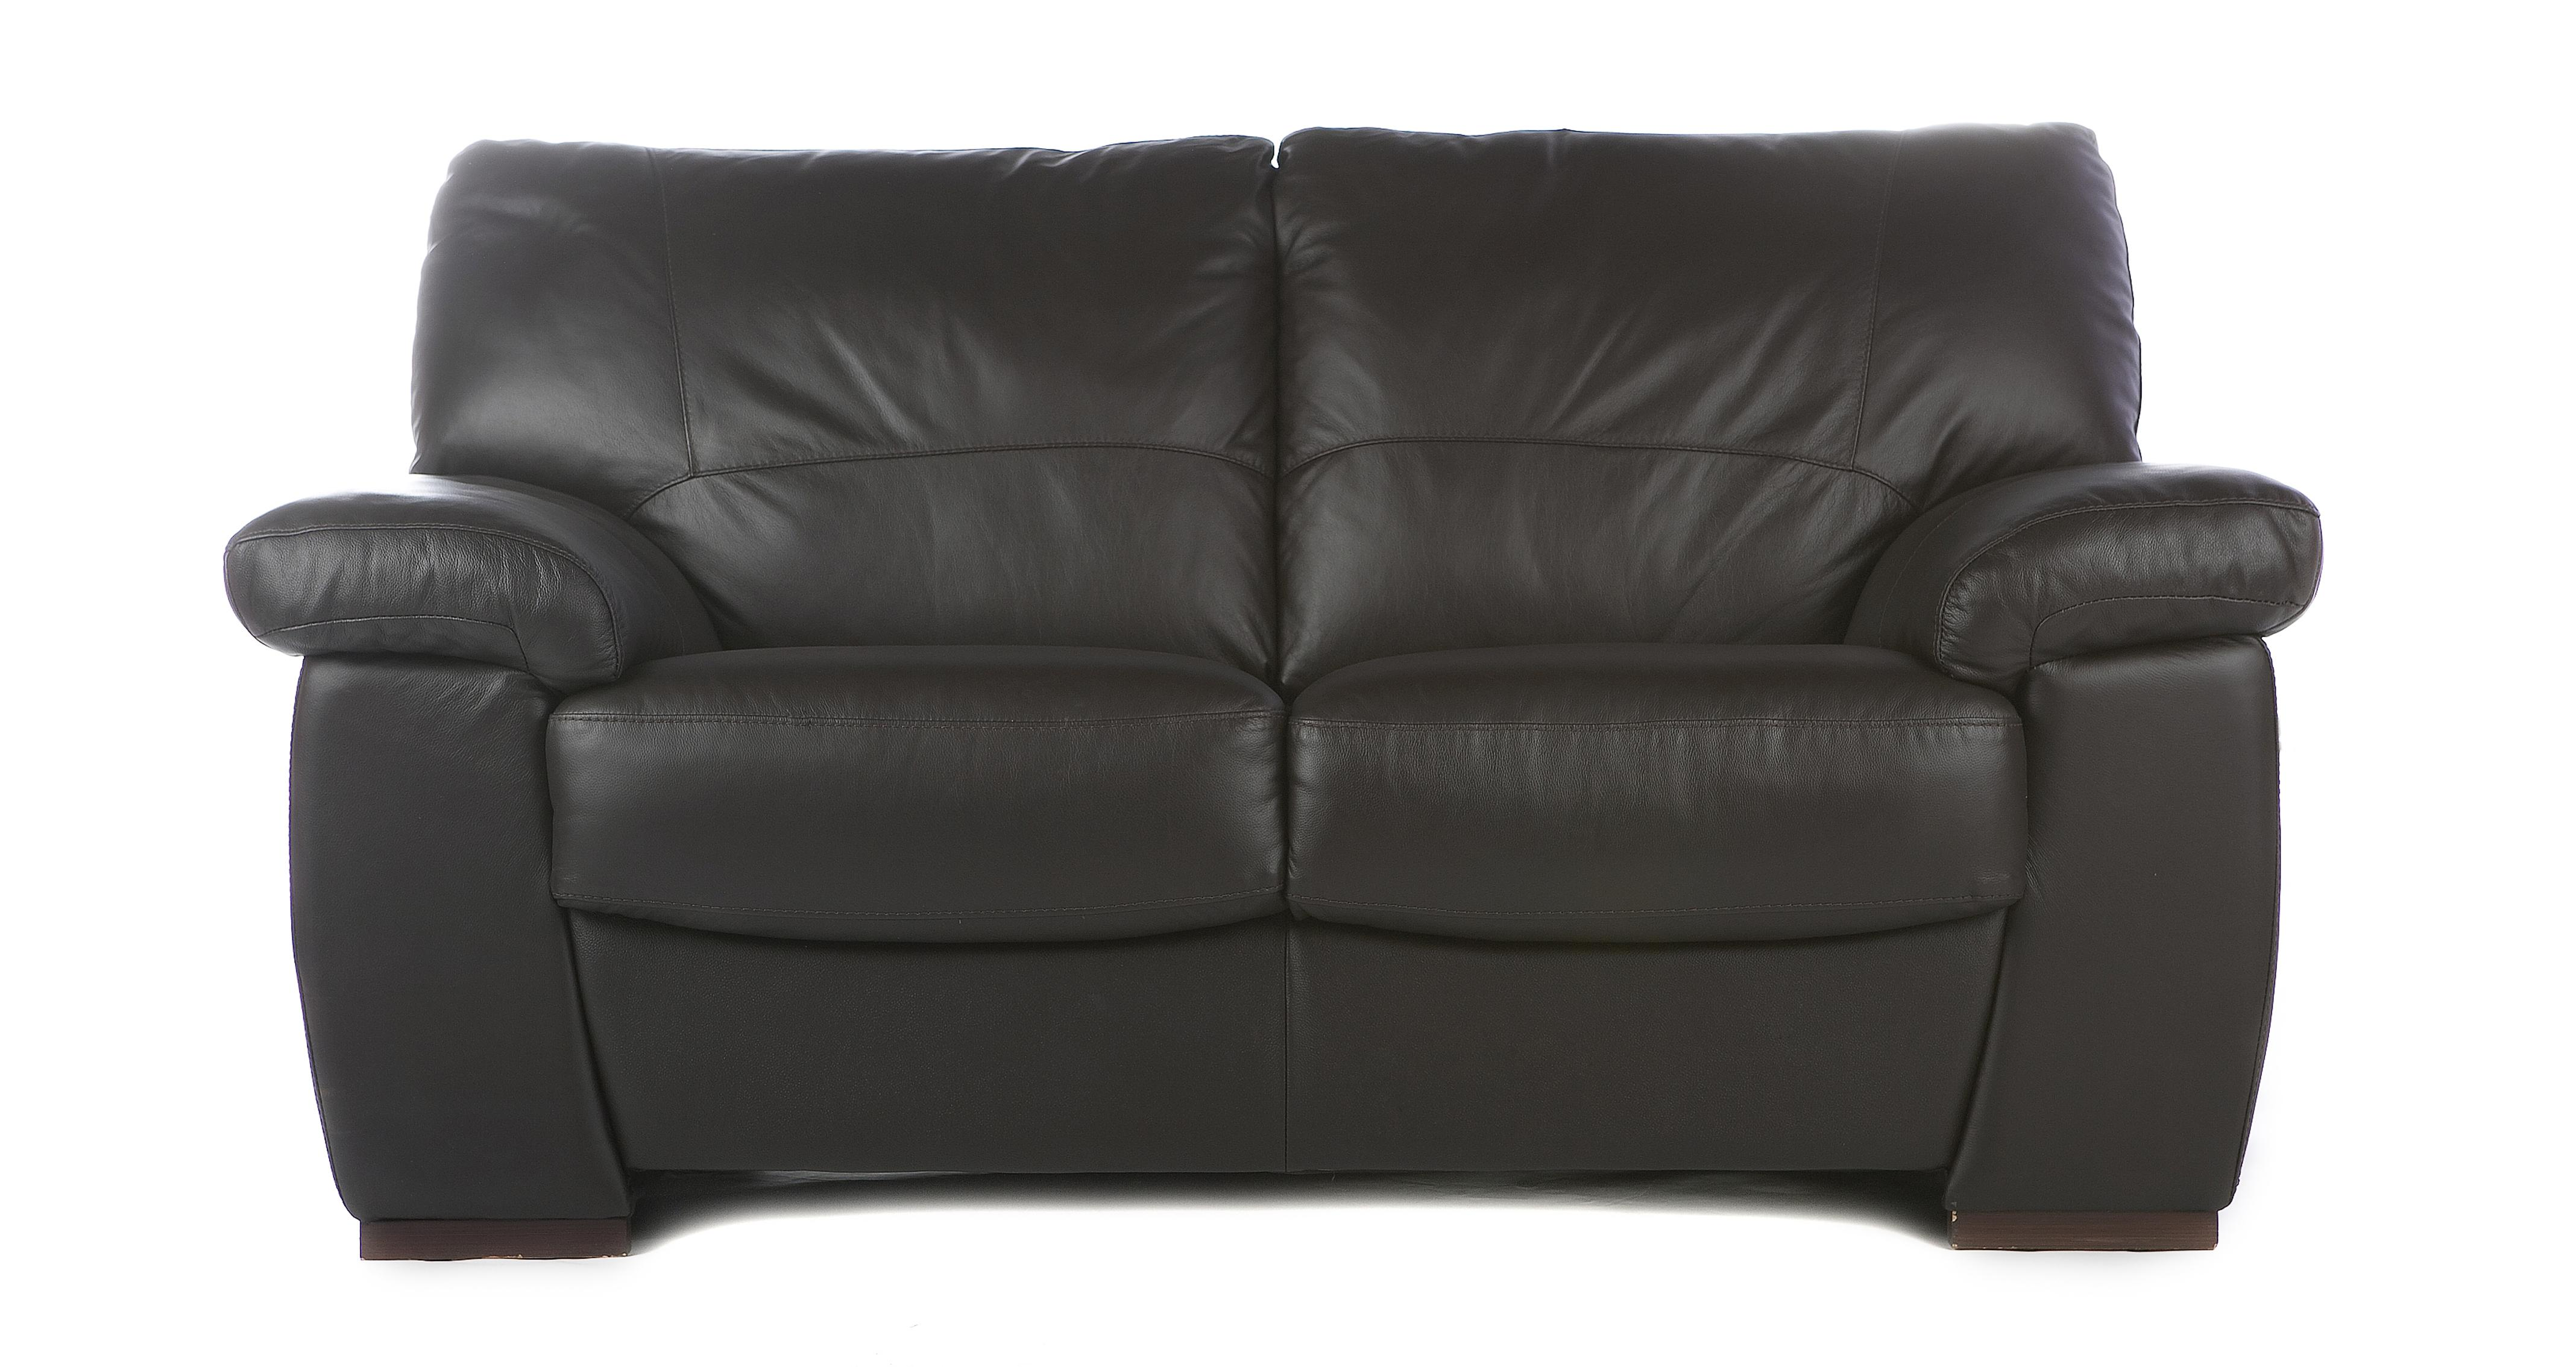 2 seater leather sofas at dfs american sleeper sofa cheap beds uk brokeasshome